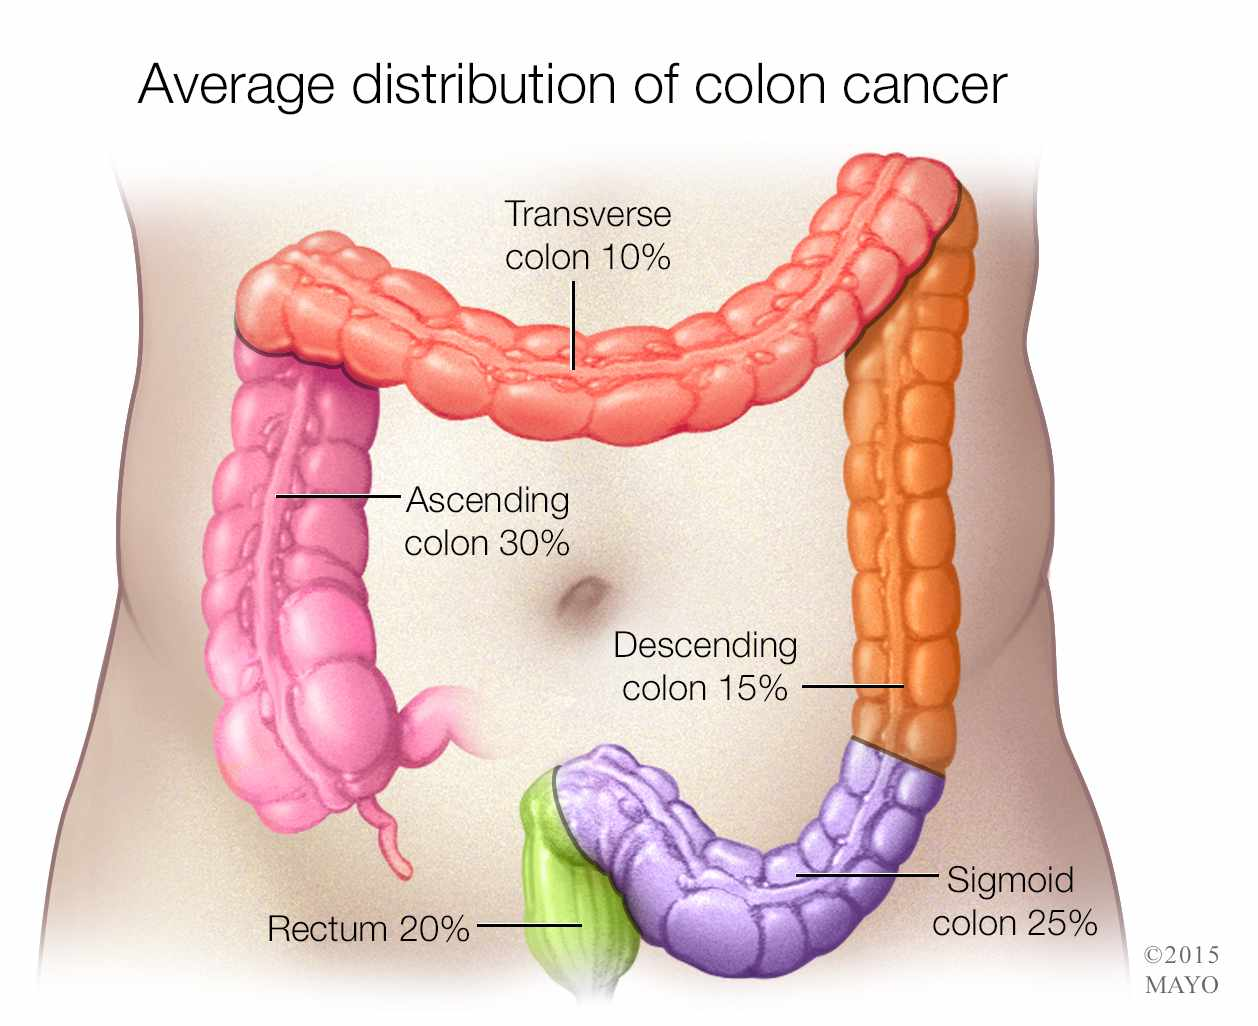 colon cancer distribution